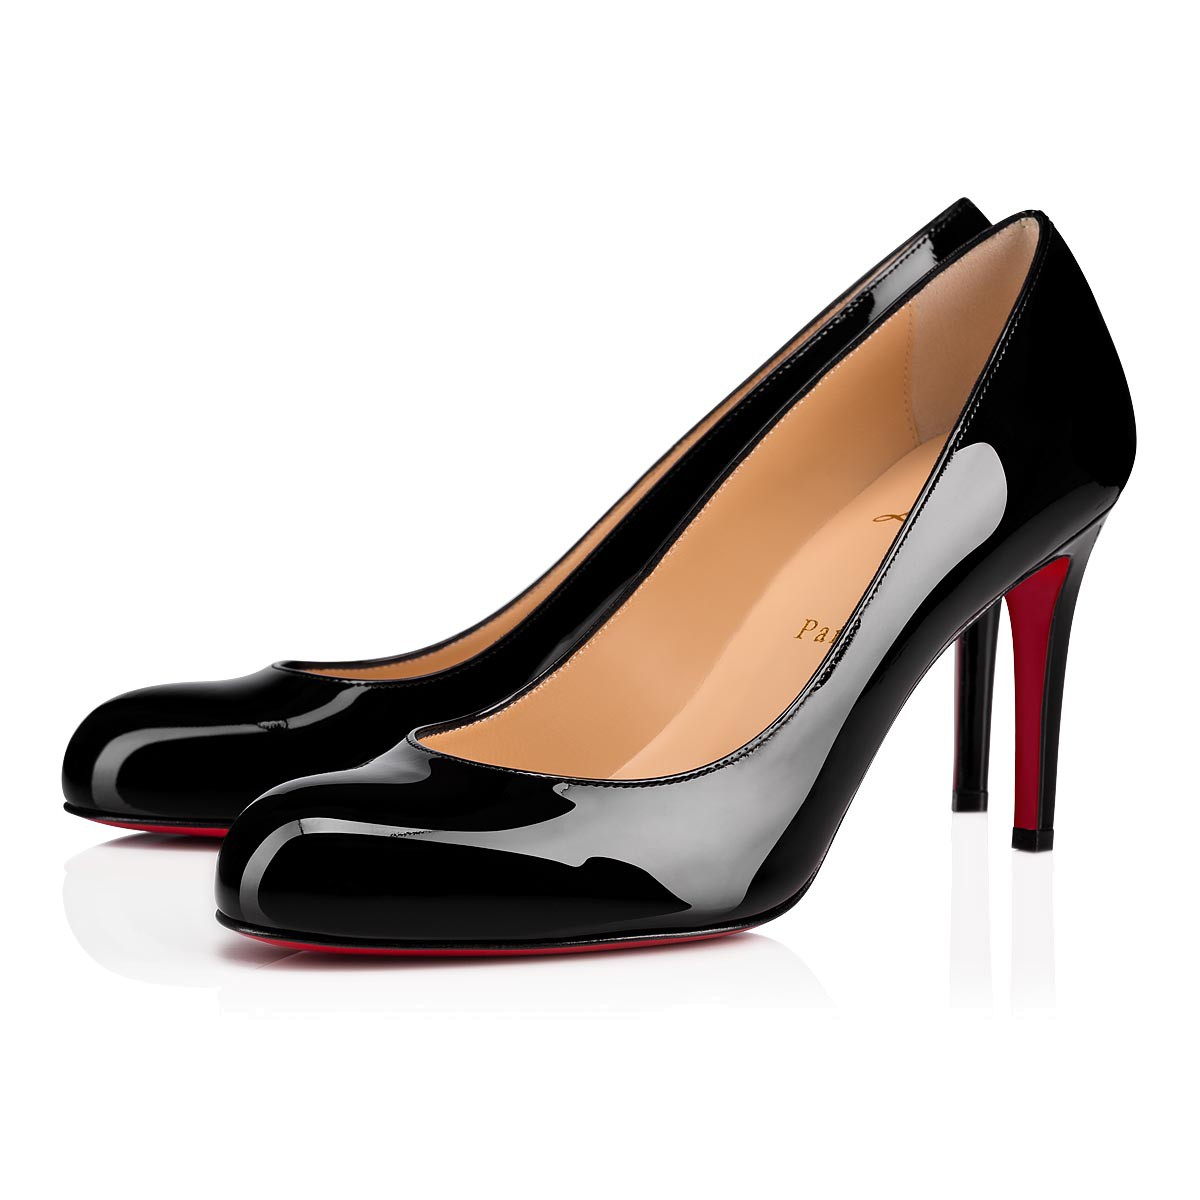 736e312d7 Simple Pump 85 Black Patent Leather - Women Shoes - Christian ...